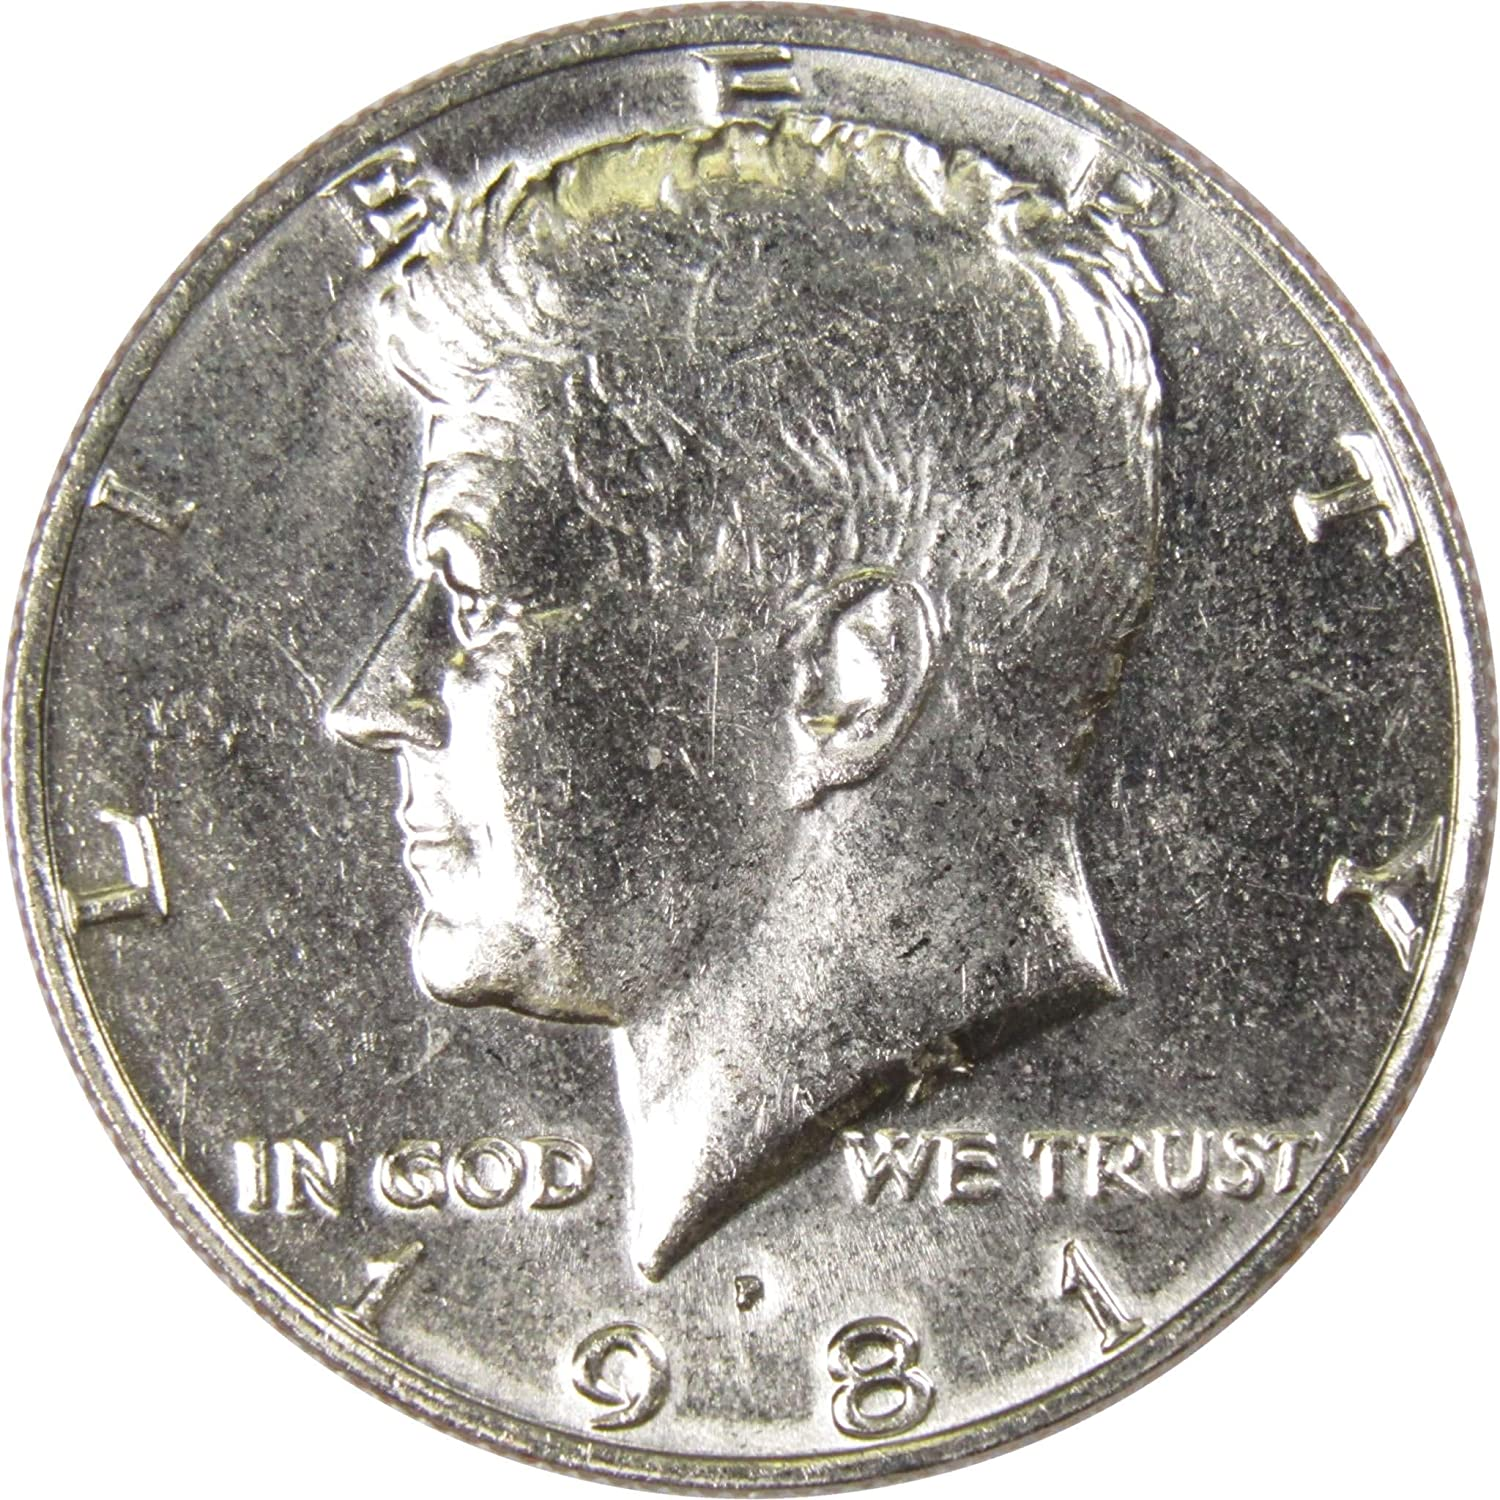 1981 P 50c Kennedy Half Dollar US Coin Uncirculated Mint